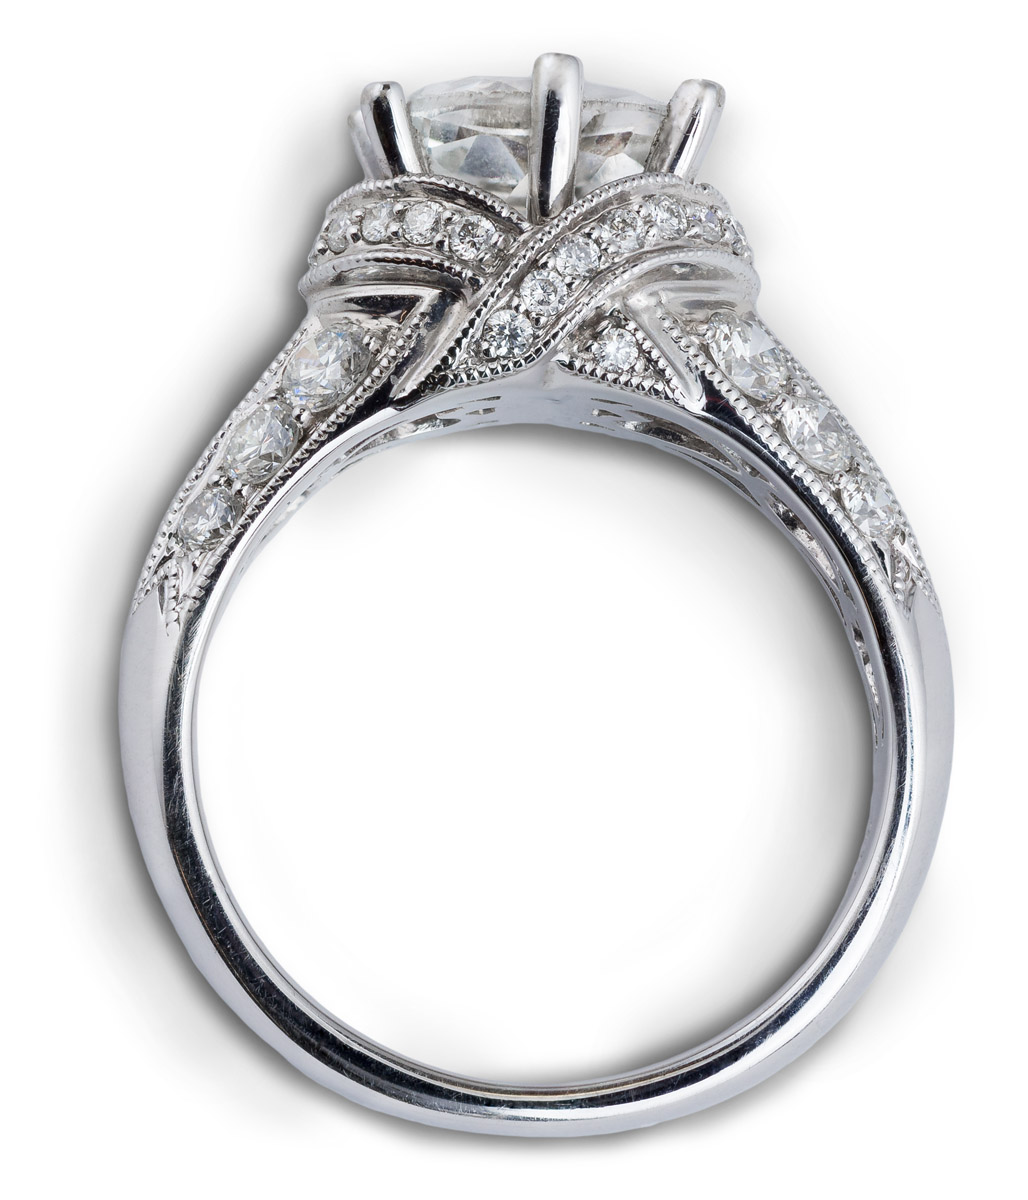 Oval Center Engagement Ring with Diamond Accents - Top